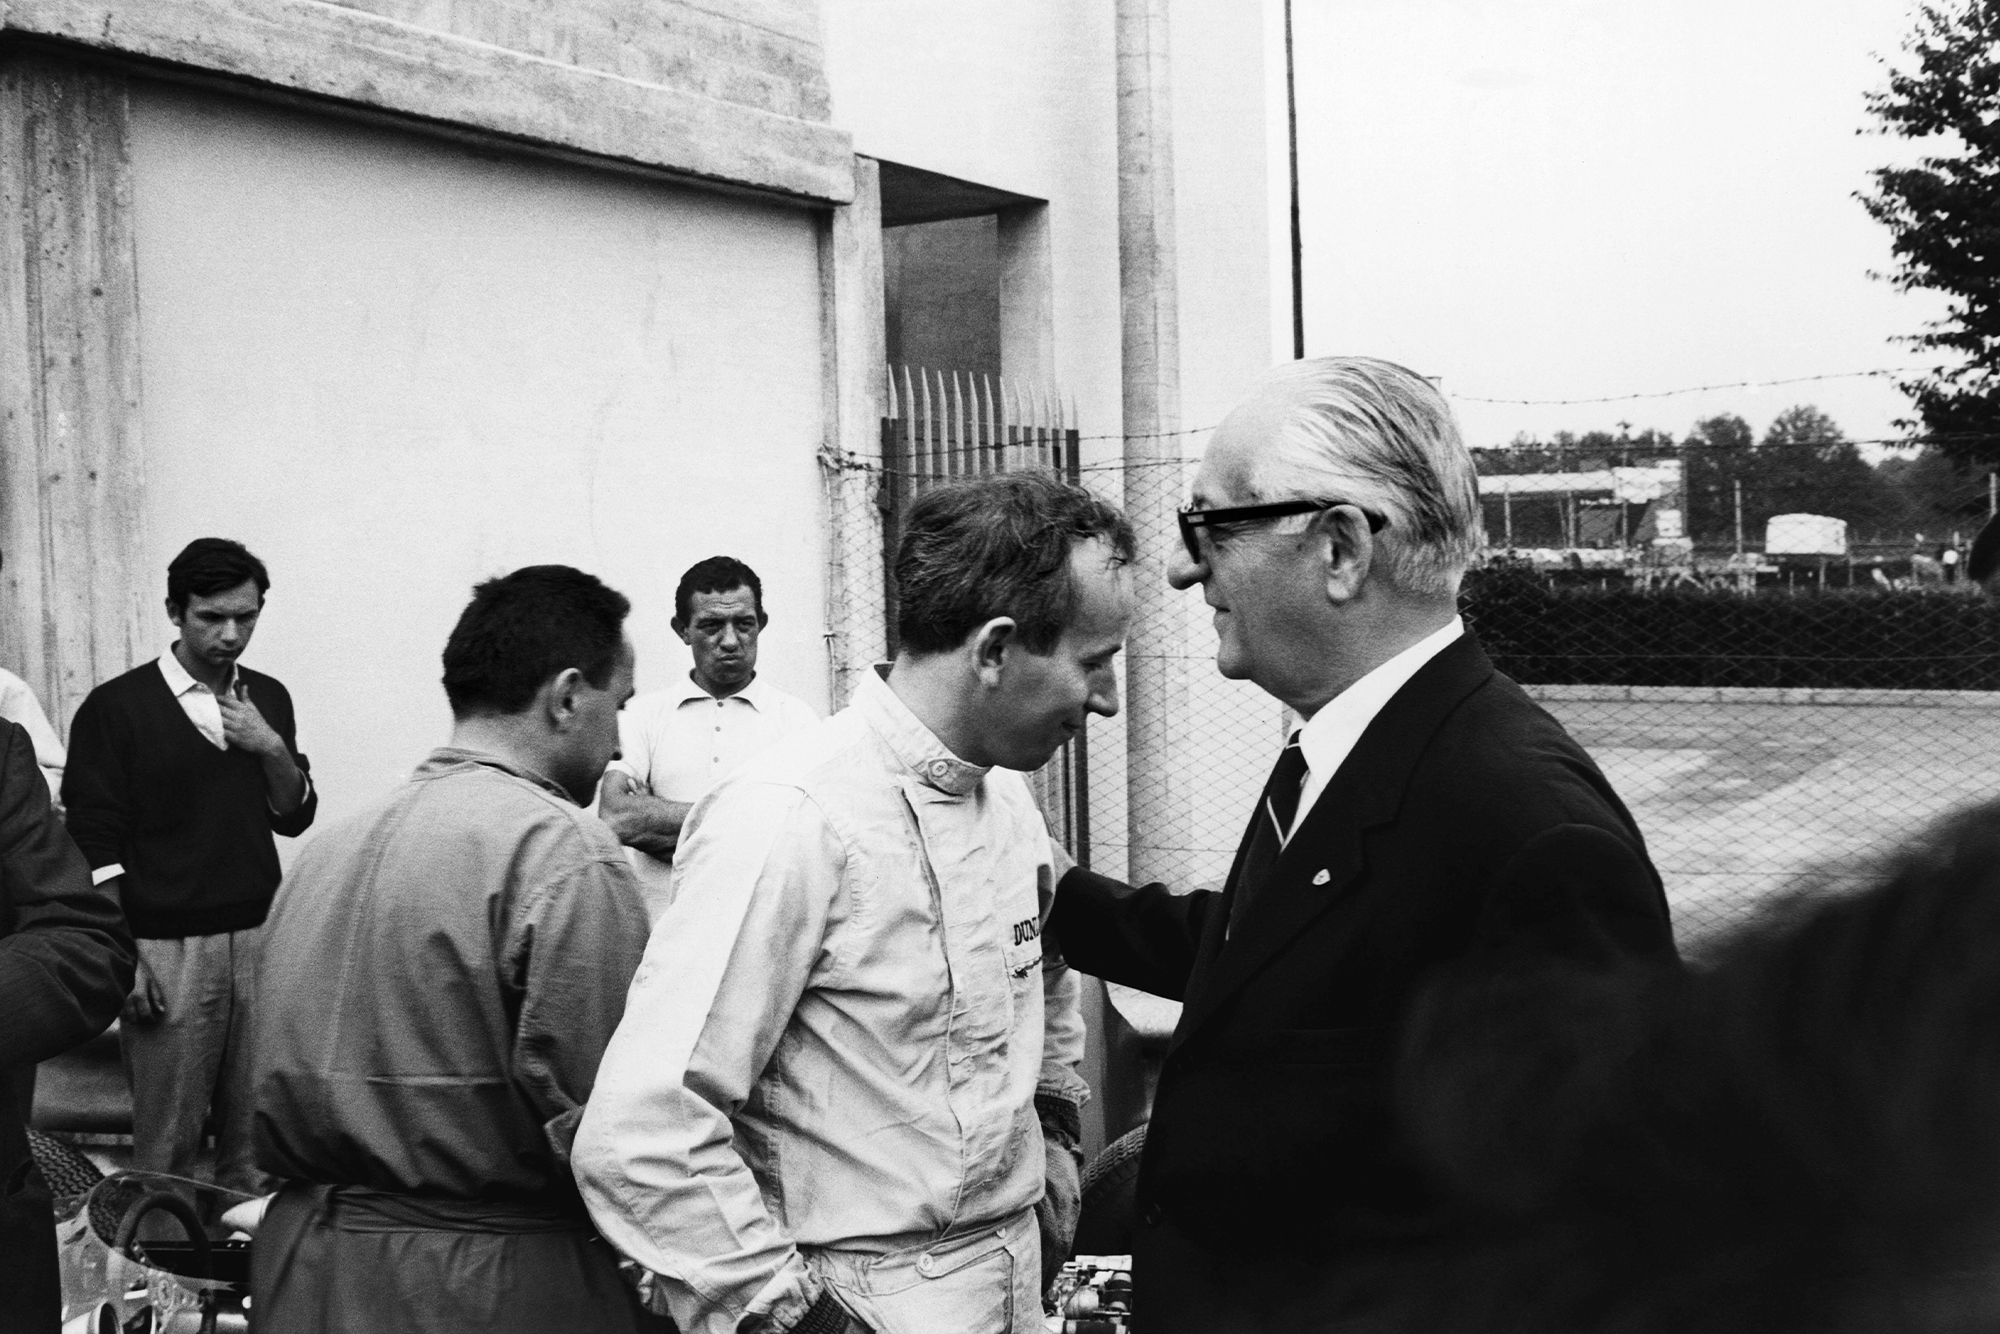 John Surtees with Ferrari team boss Enzo Ferrari talk in the pits.